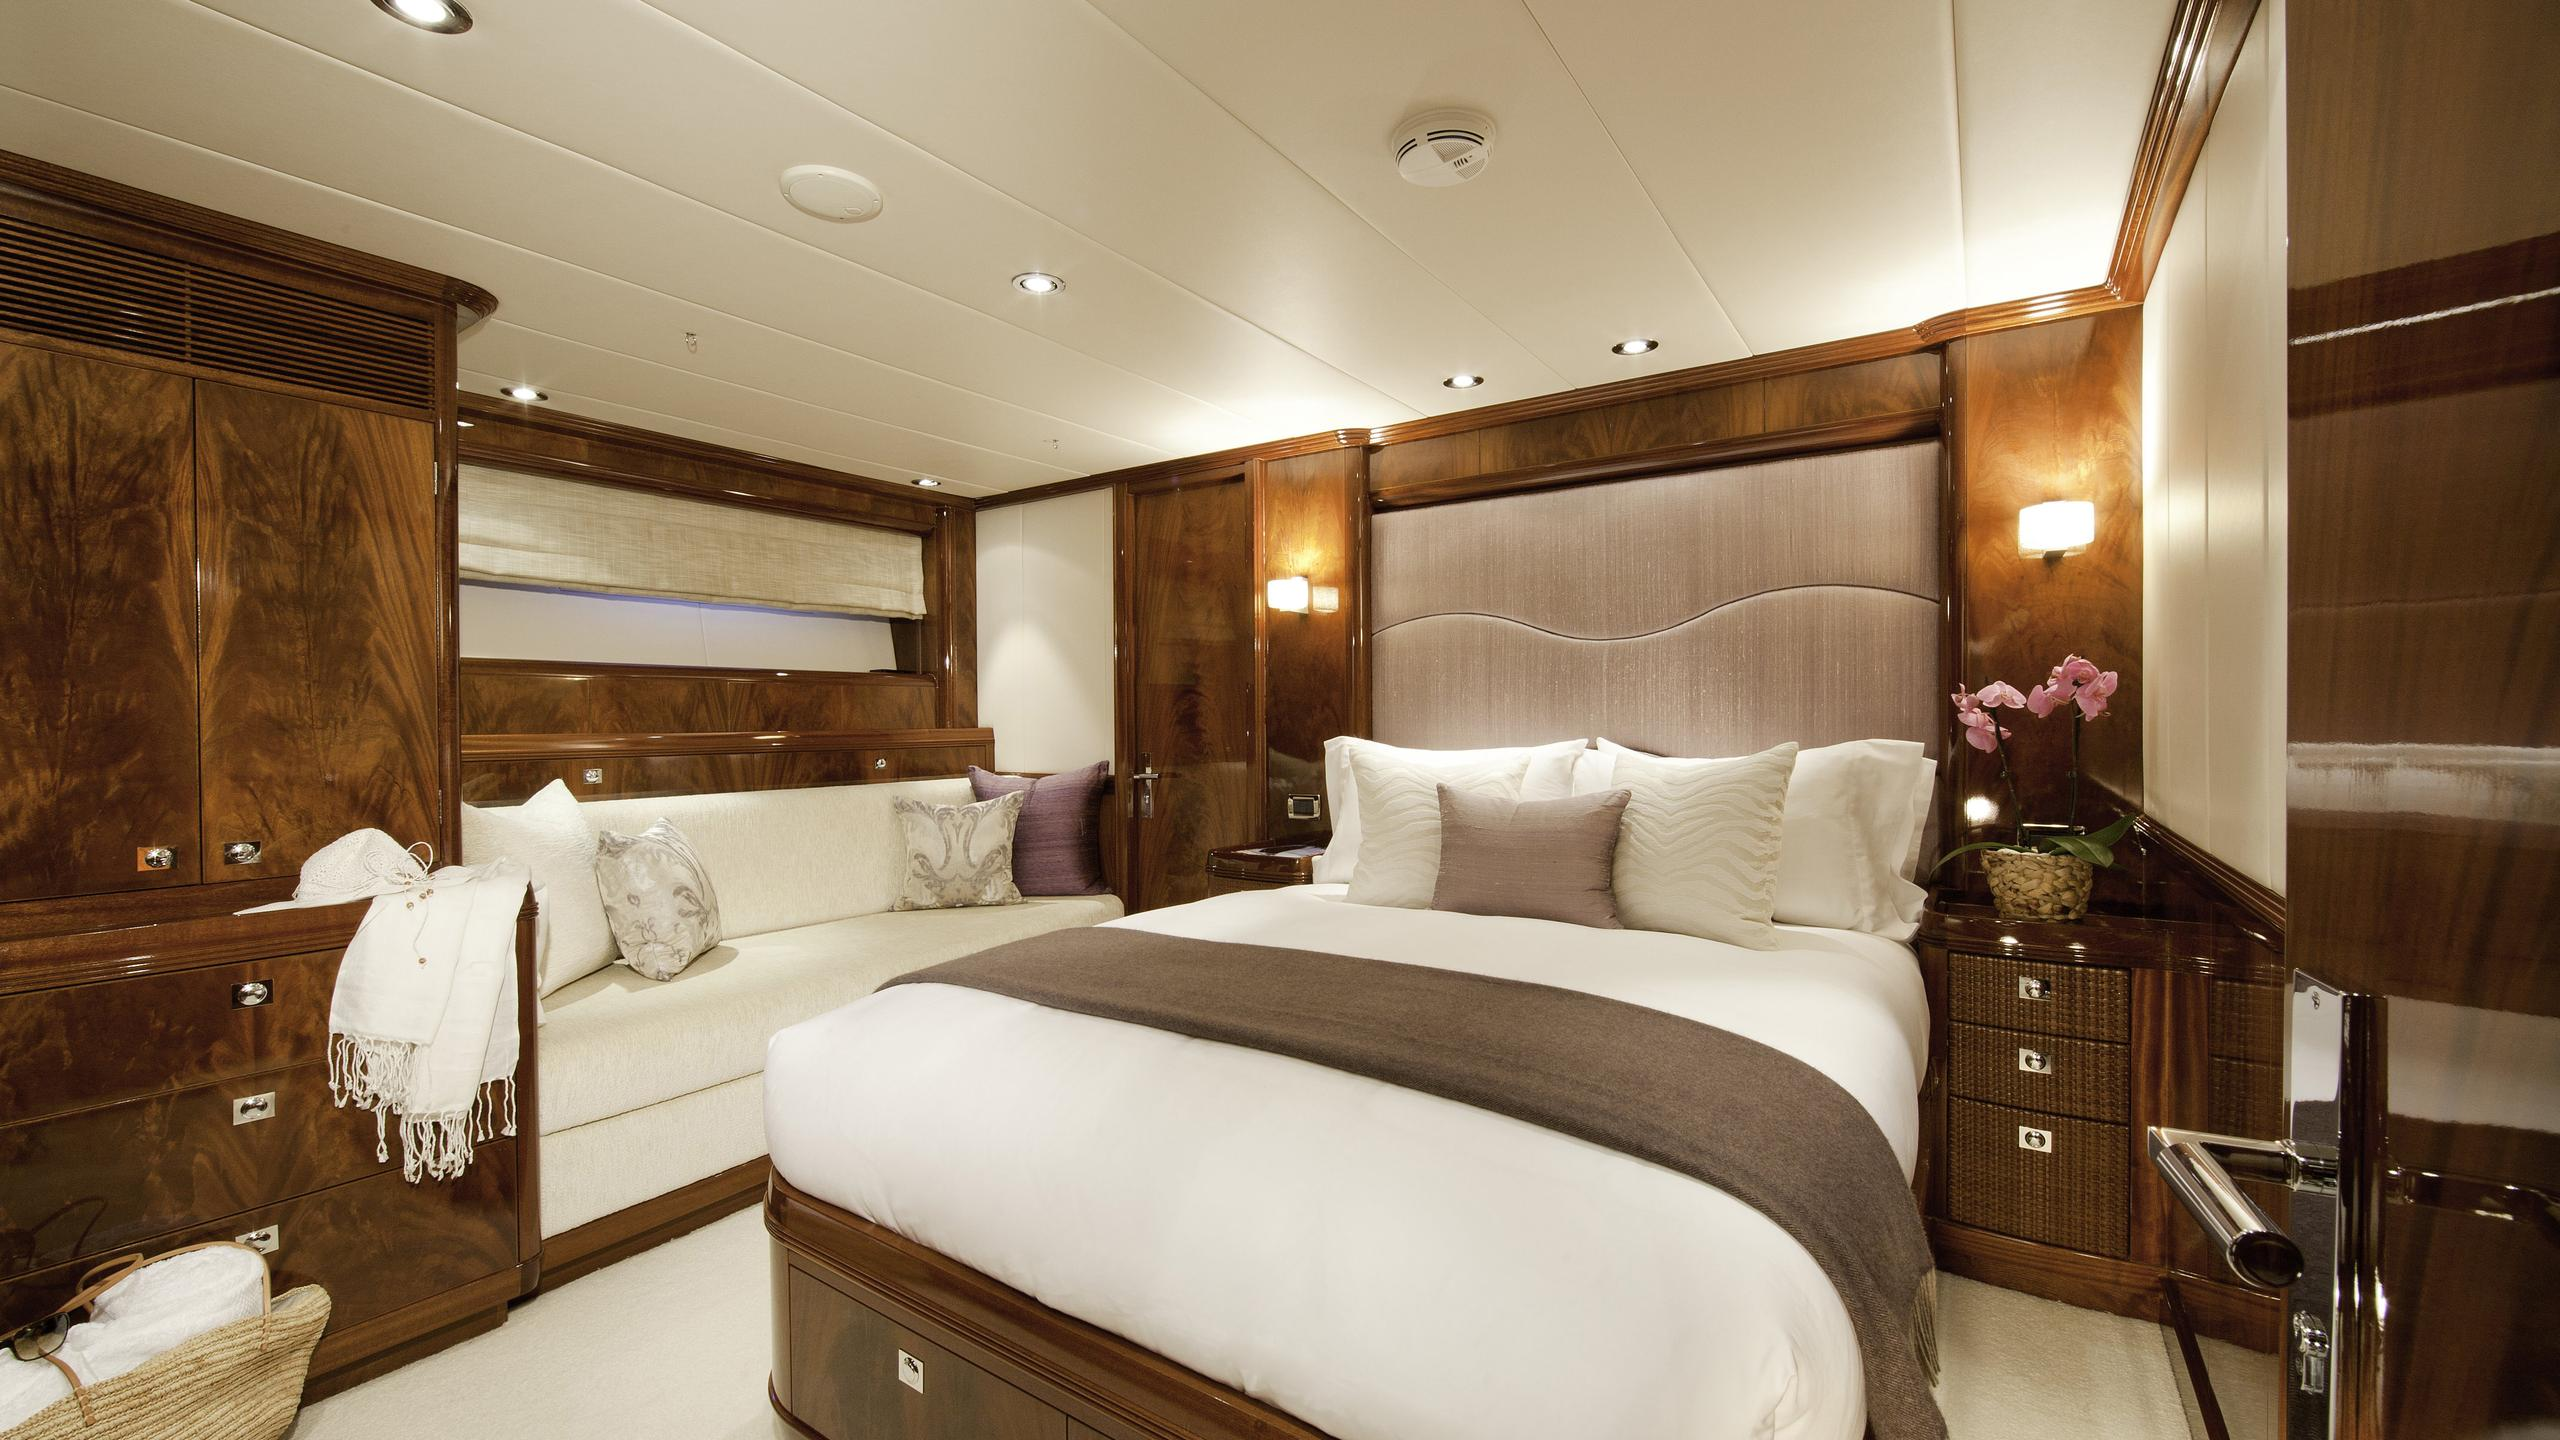 destination-fox-harb'r-yacht-double-cabin